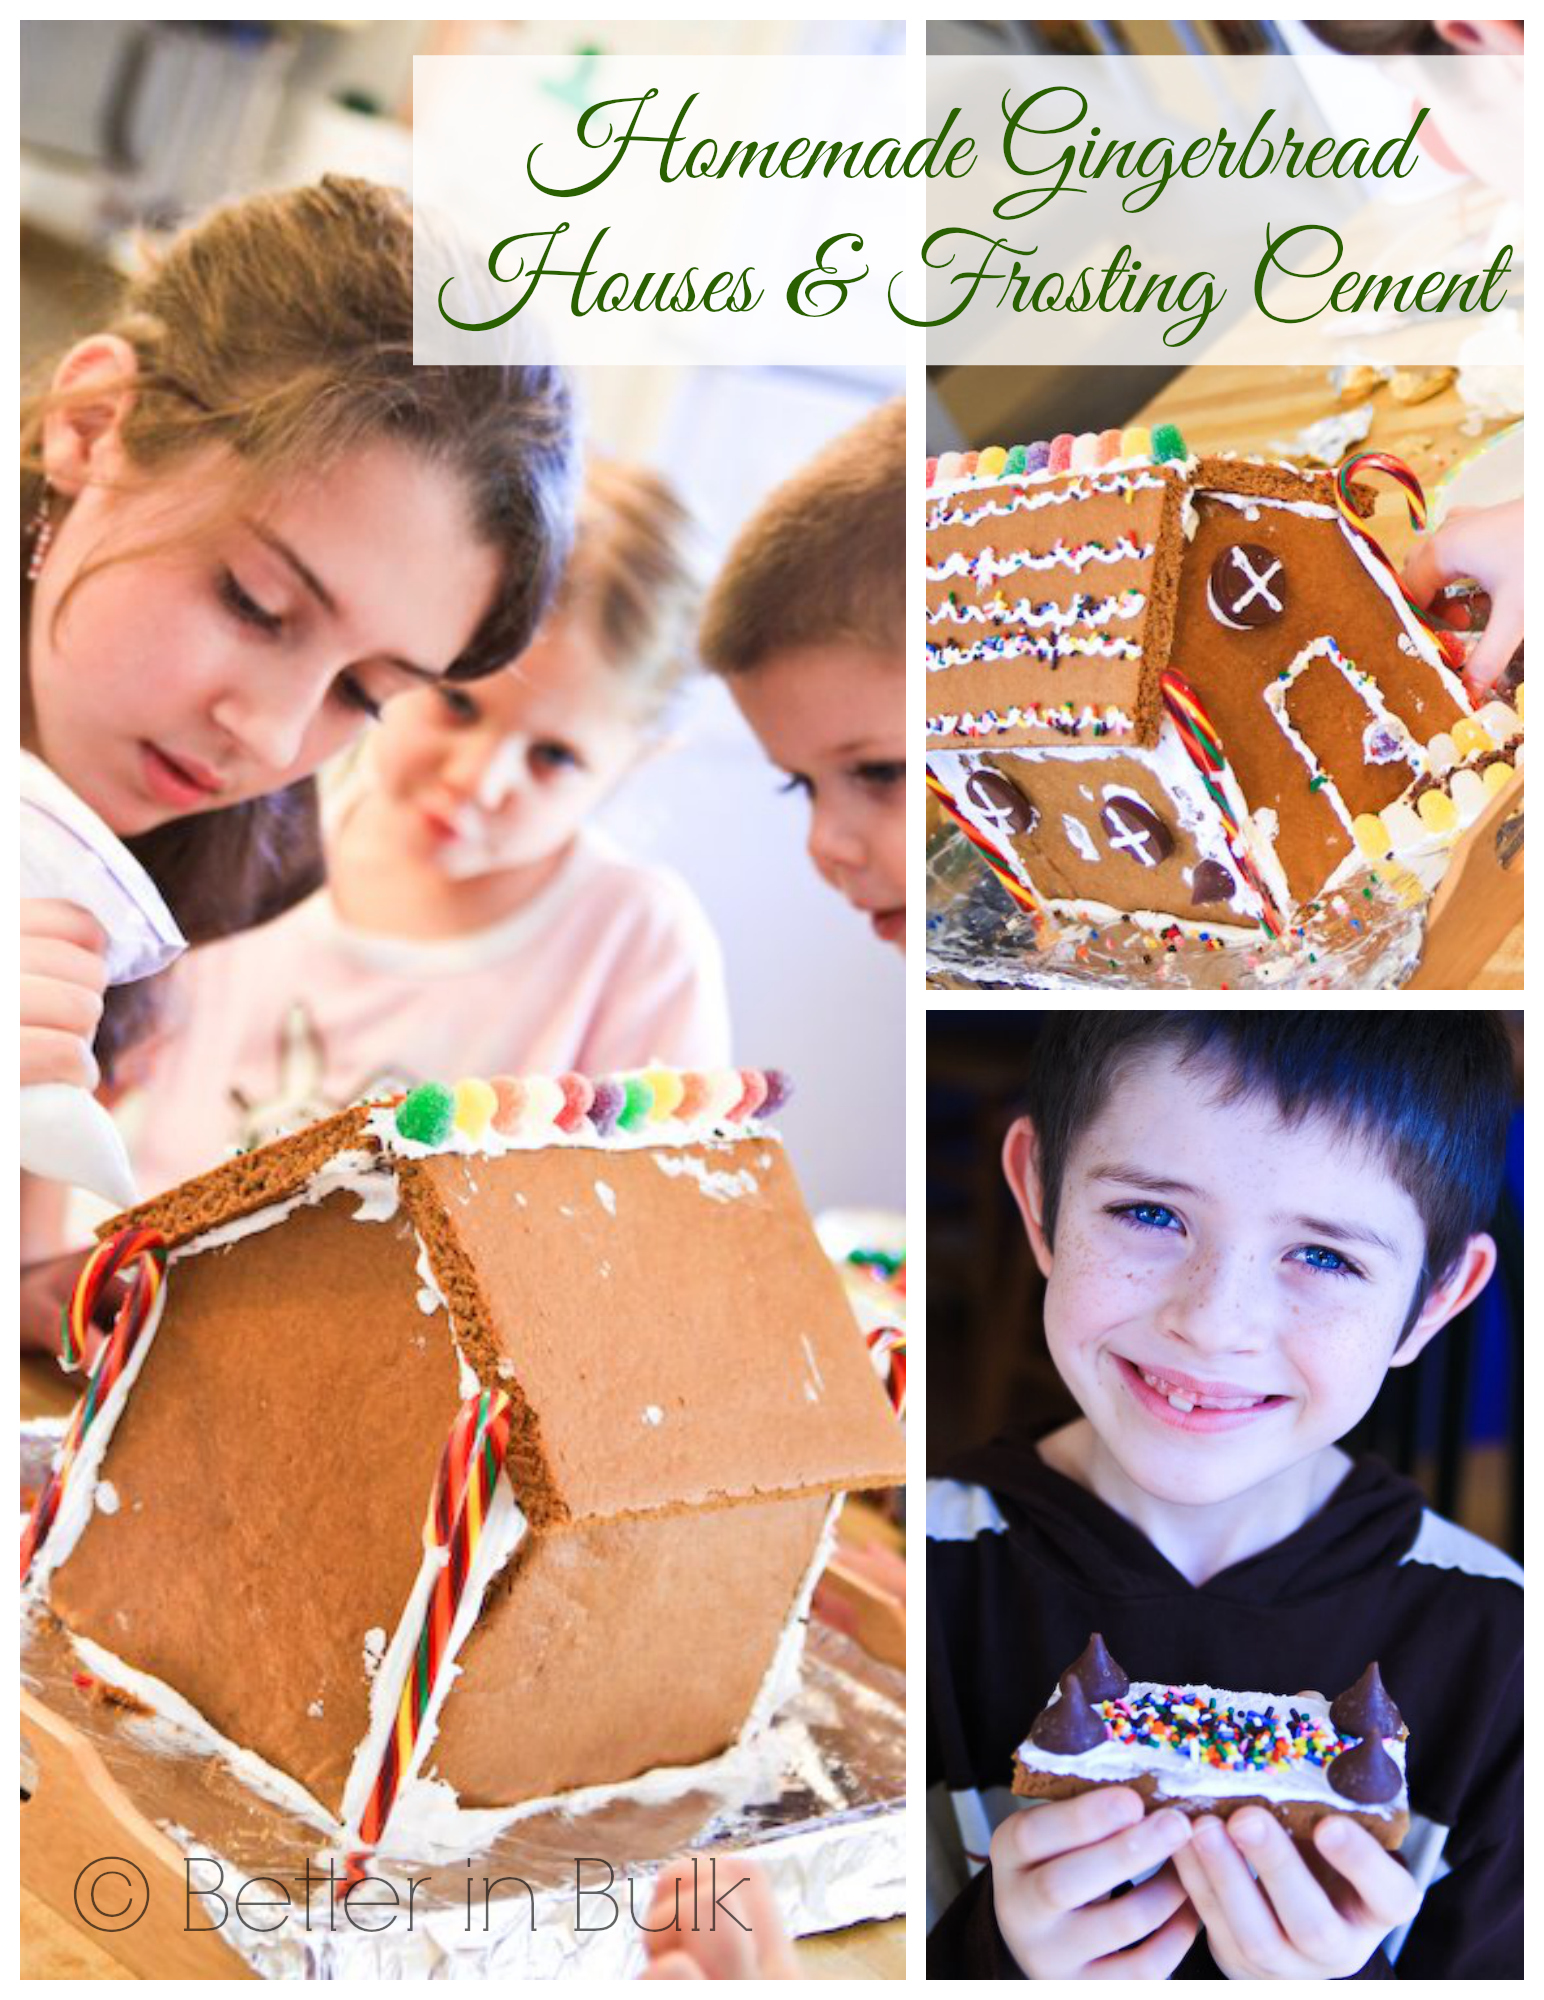 Homemade Gingerbread Houses Frosting Cement